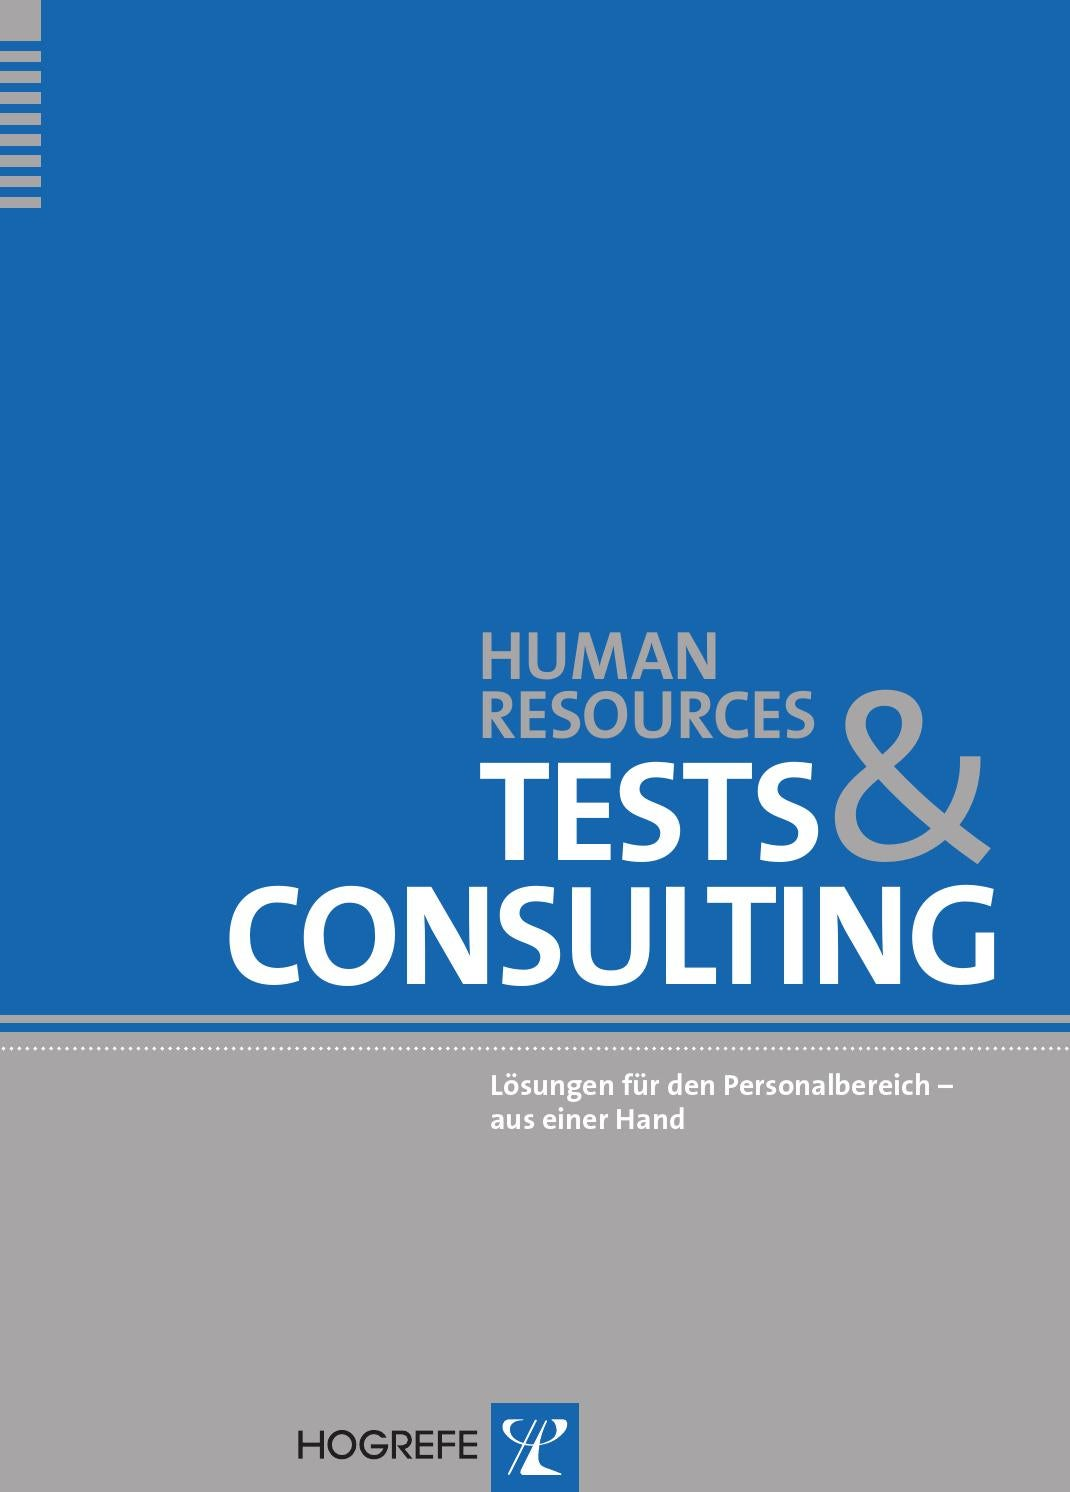 Human Resources by Hogrefe - issuu